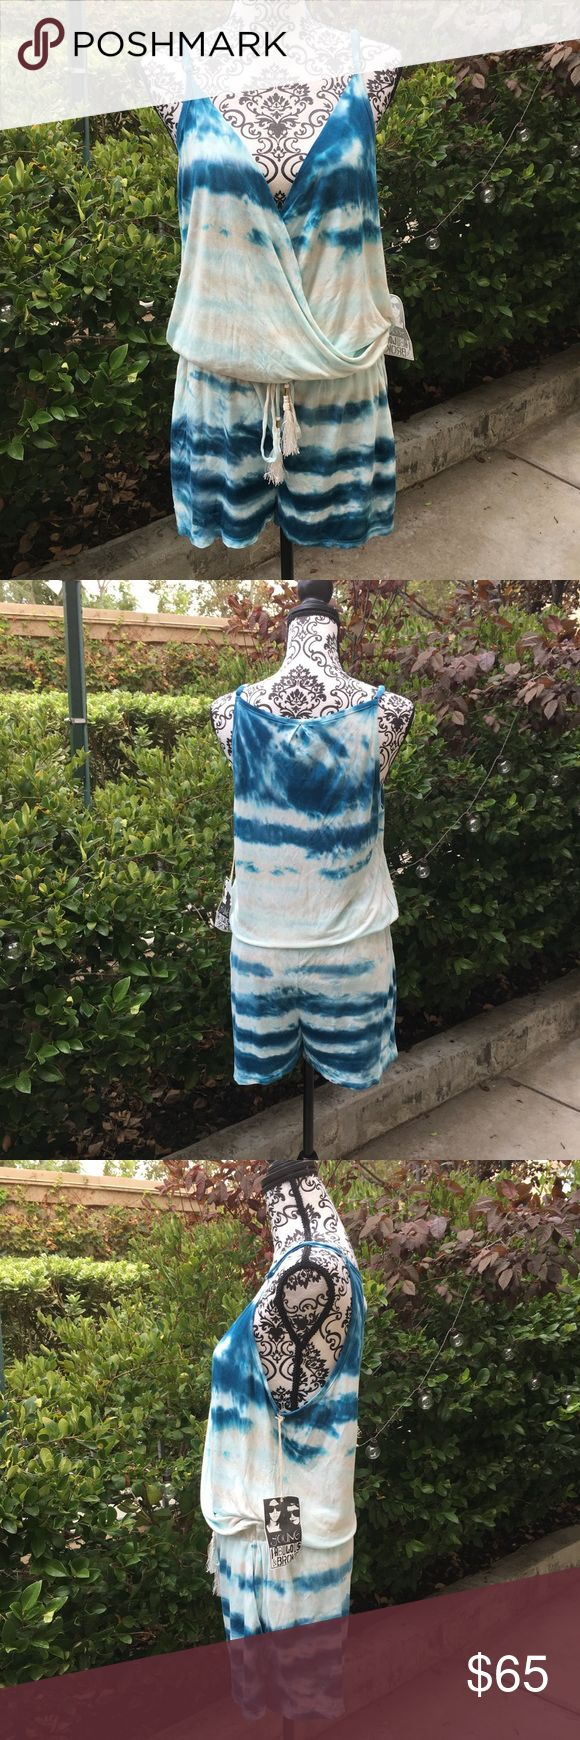 Young fabulous and broke tie-dyed romper New with partial tags and never worn ,Young fabulous and broke tie-dyed turquoise and white romper in L. but will also fit a Med. Very cute with  fringe detailing on the waste tie. Young fabulous and broke Shorts